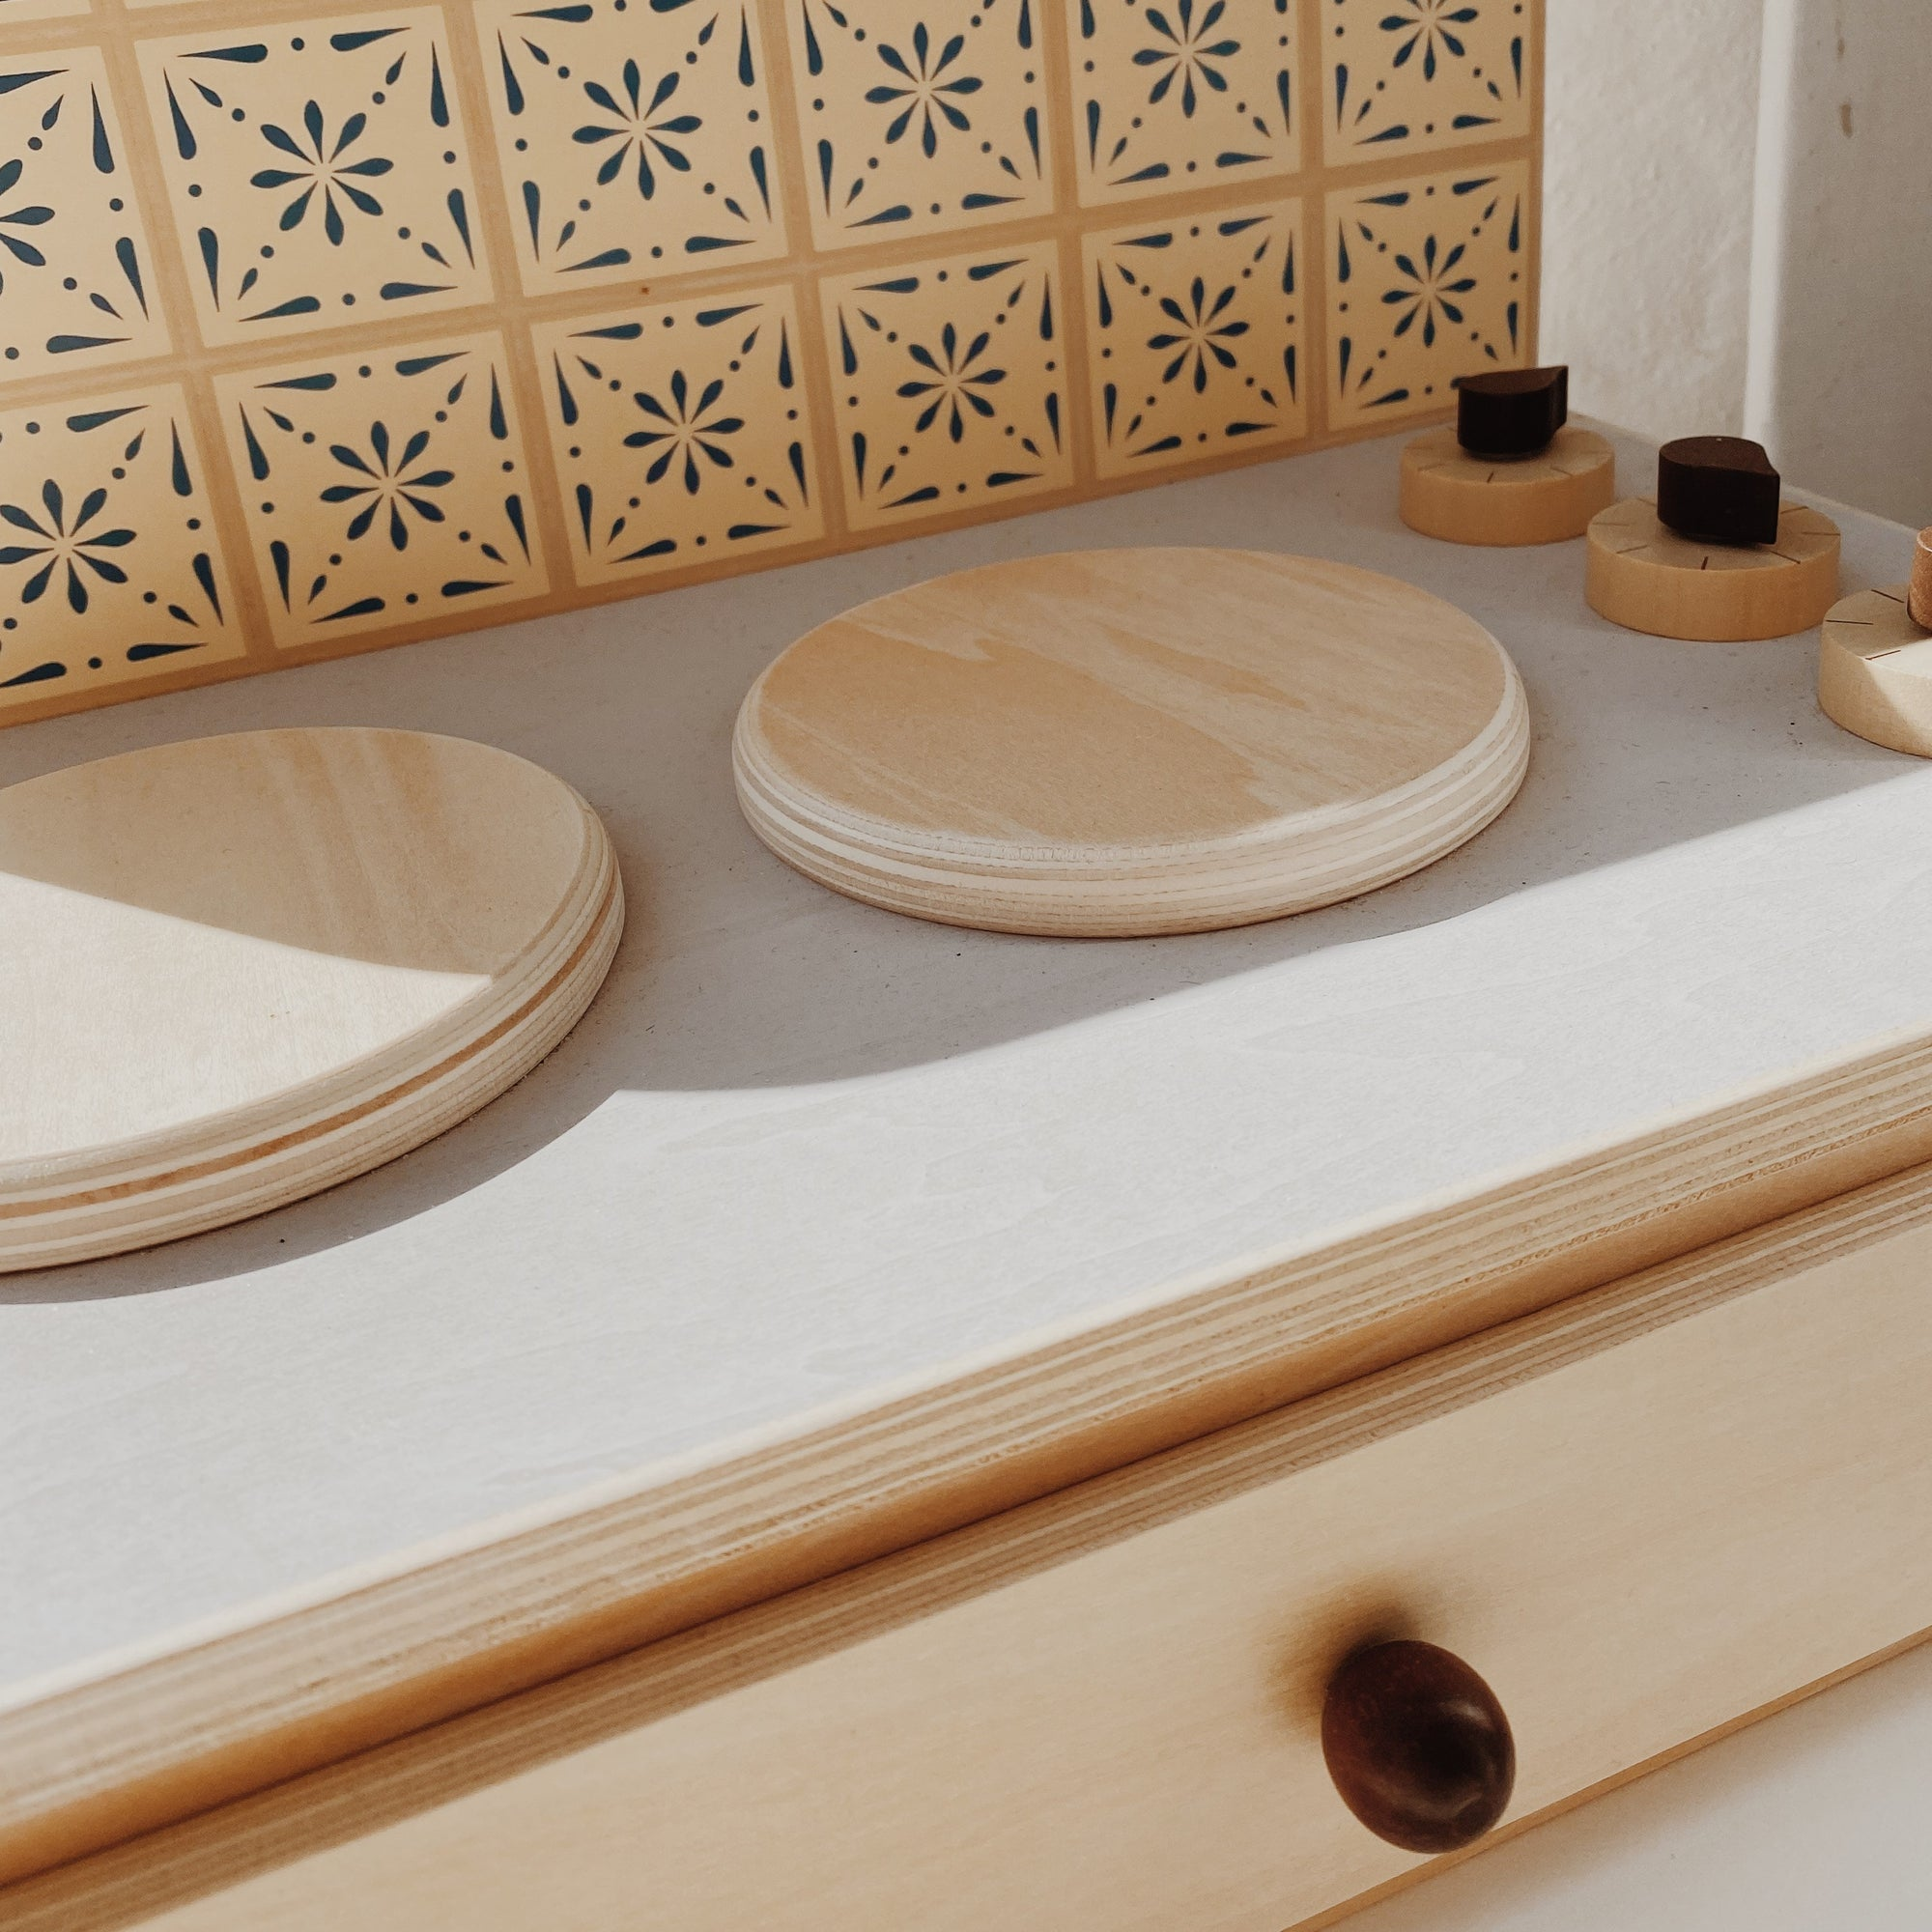 Wooden Play Kitchen Cooktop